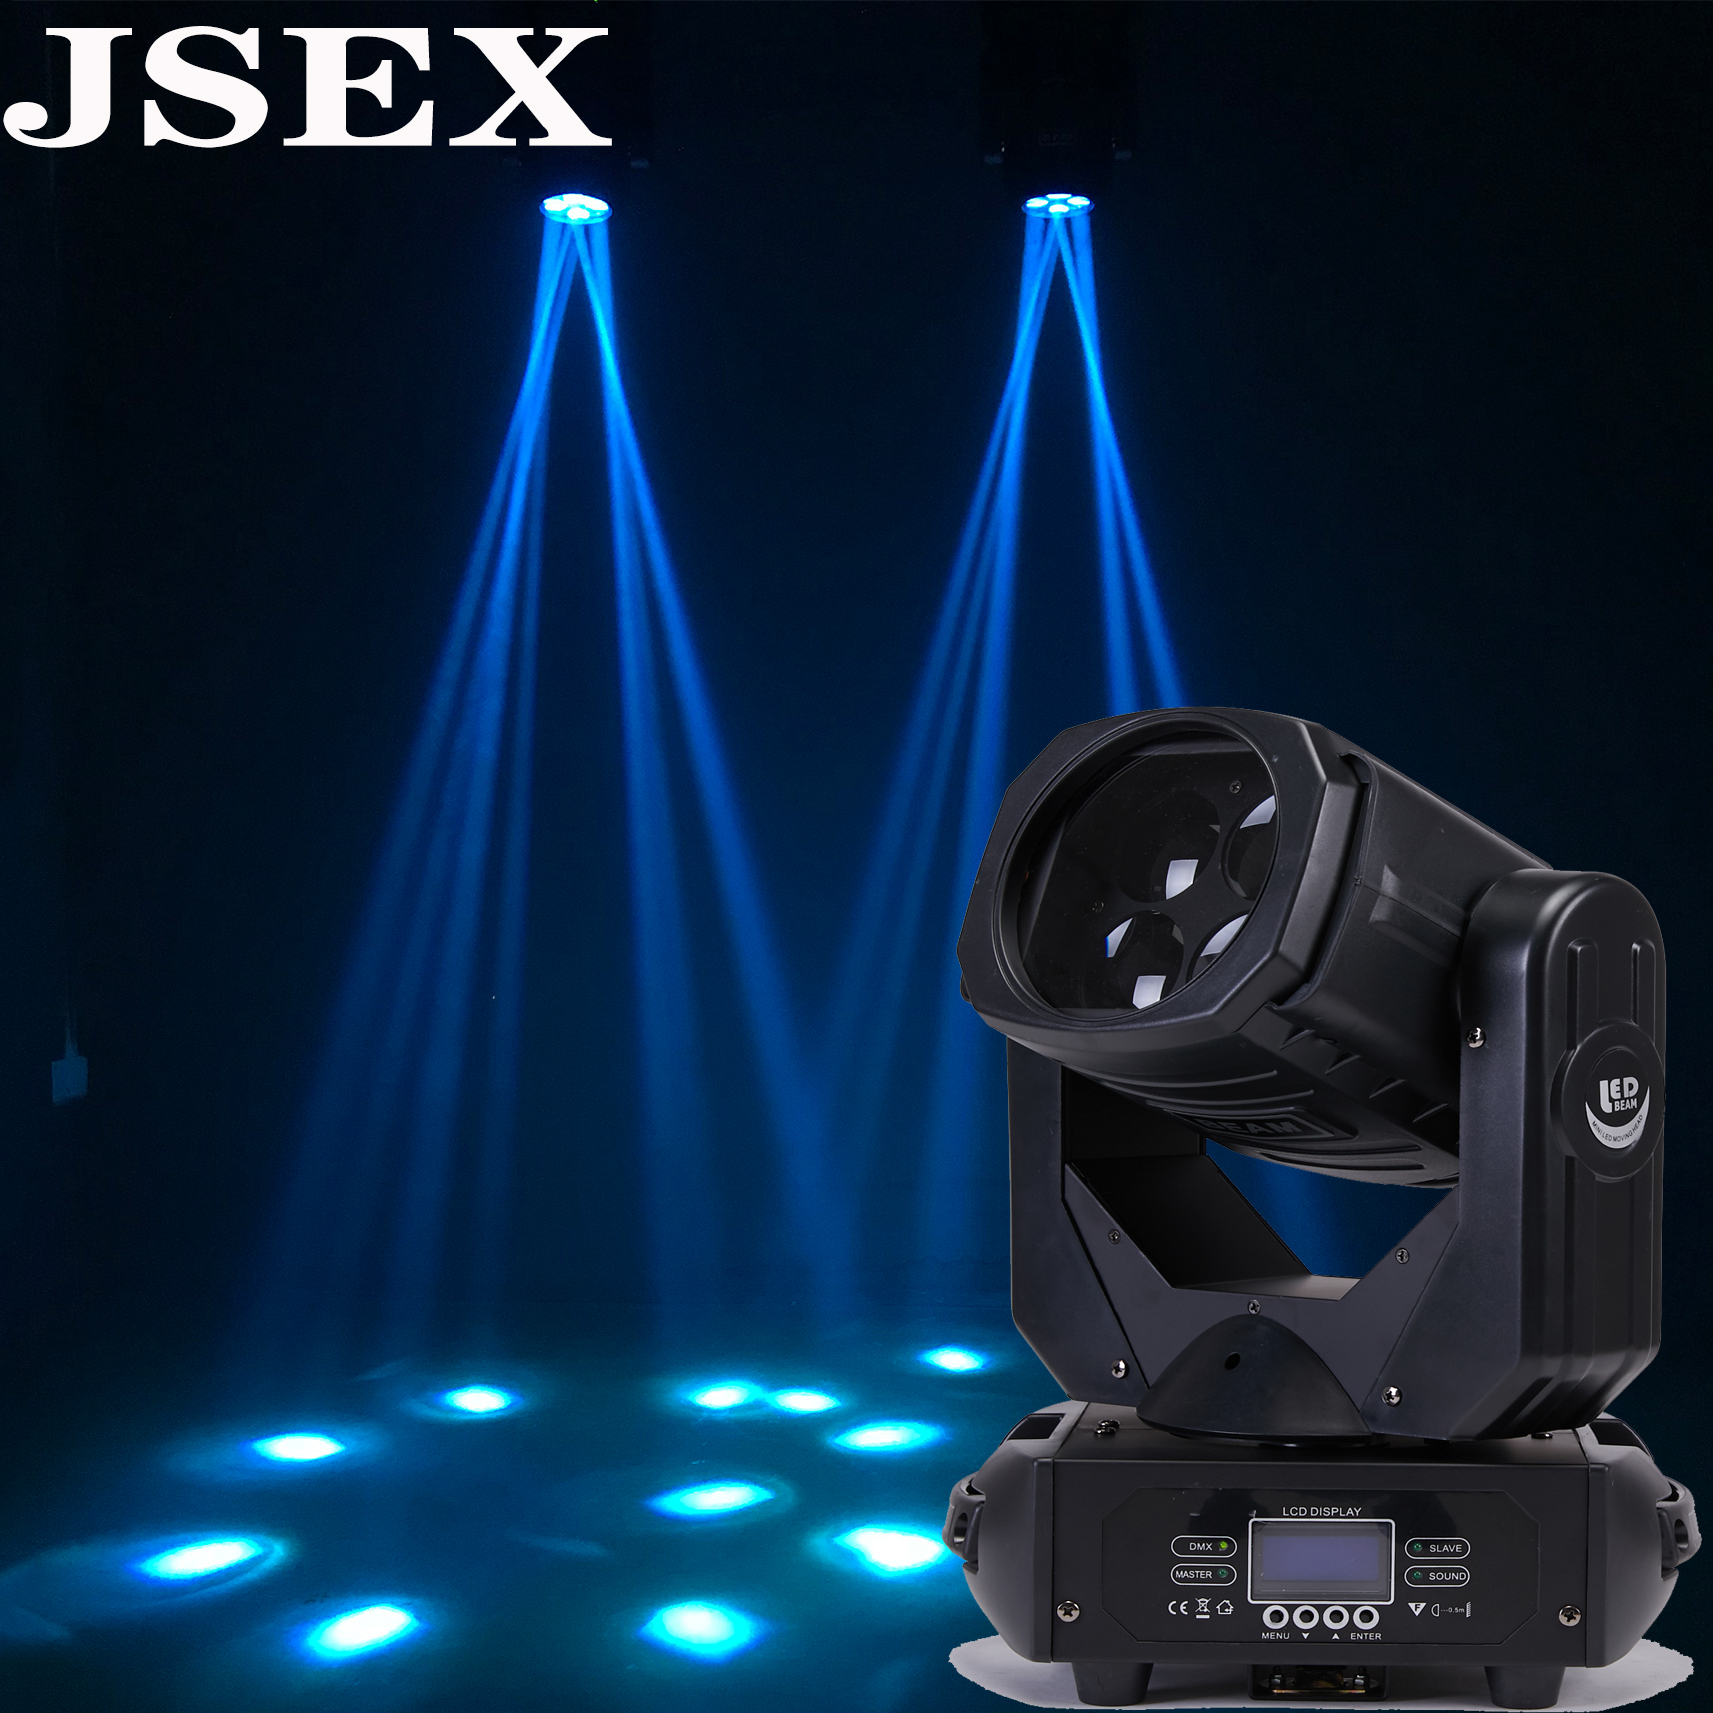 4x25W LED 100W Super Beam Moving Head Lights Spot Zoom DMX 9/15CH For Disco Stage Wedding Party Decorations